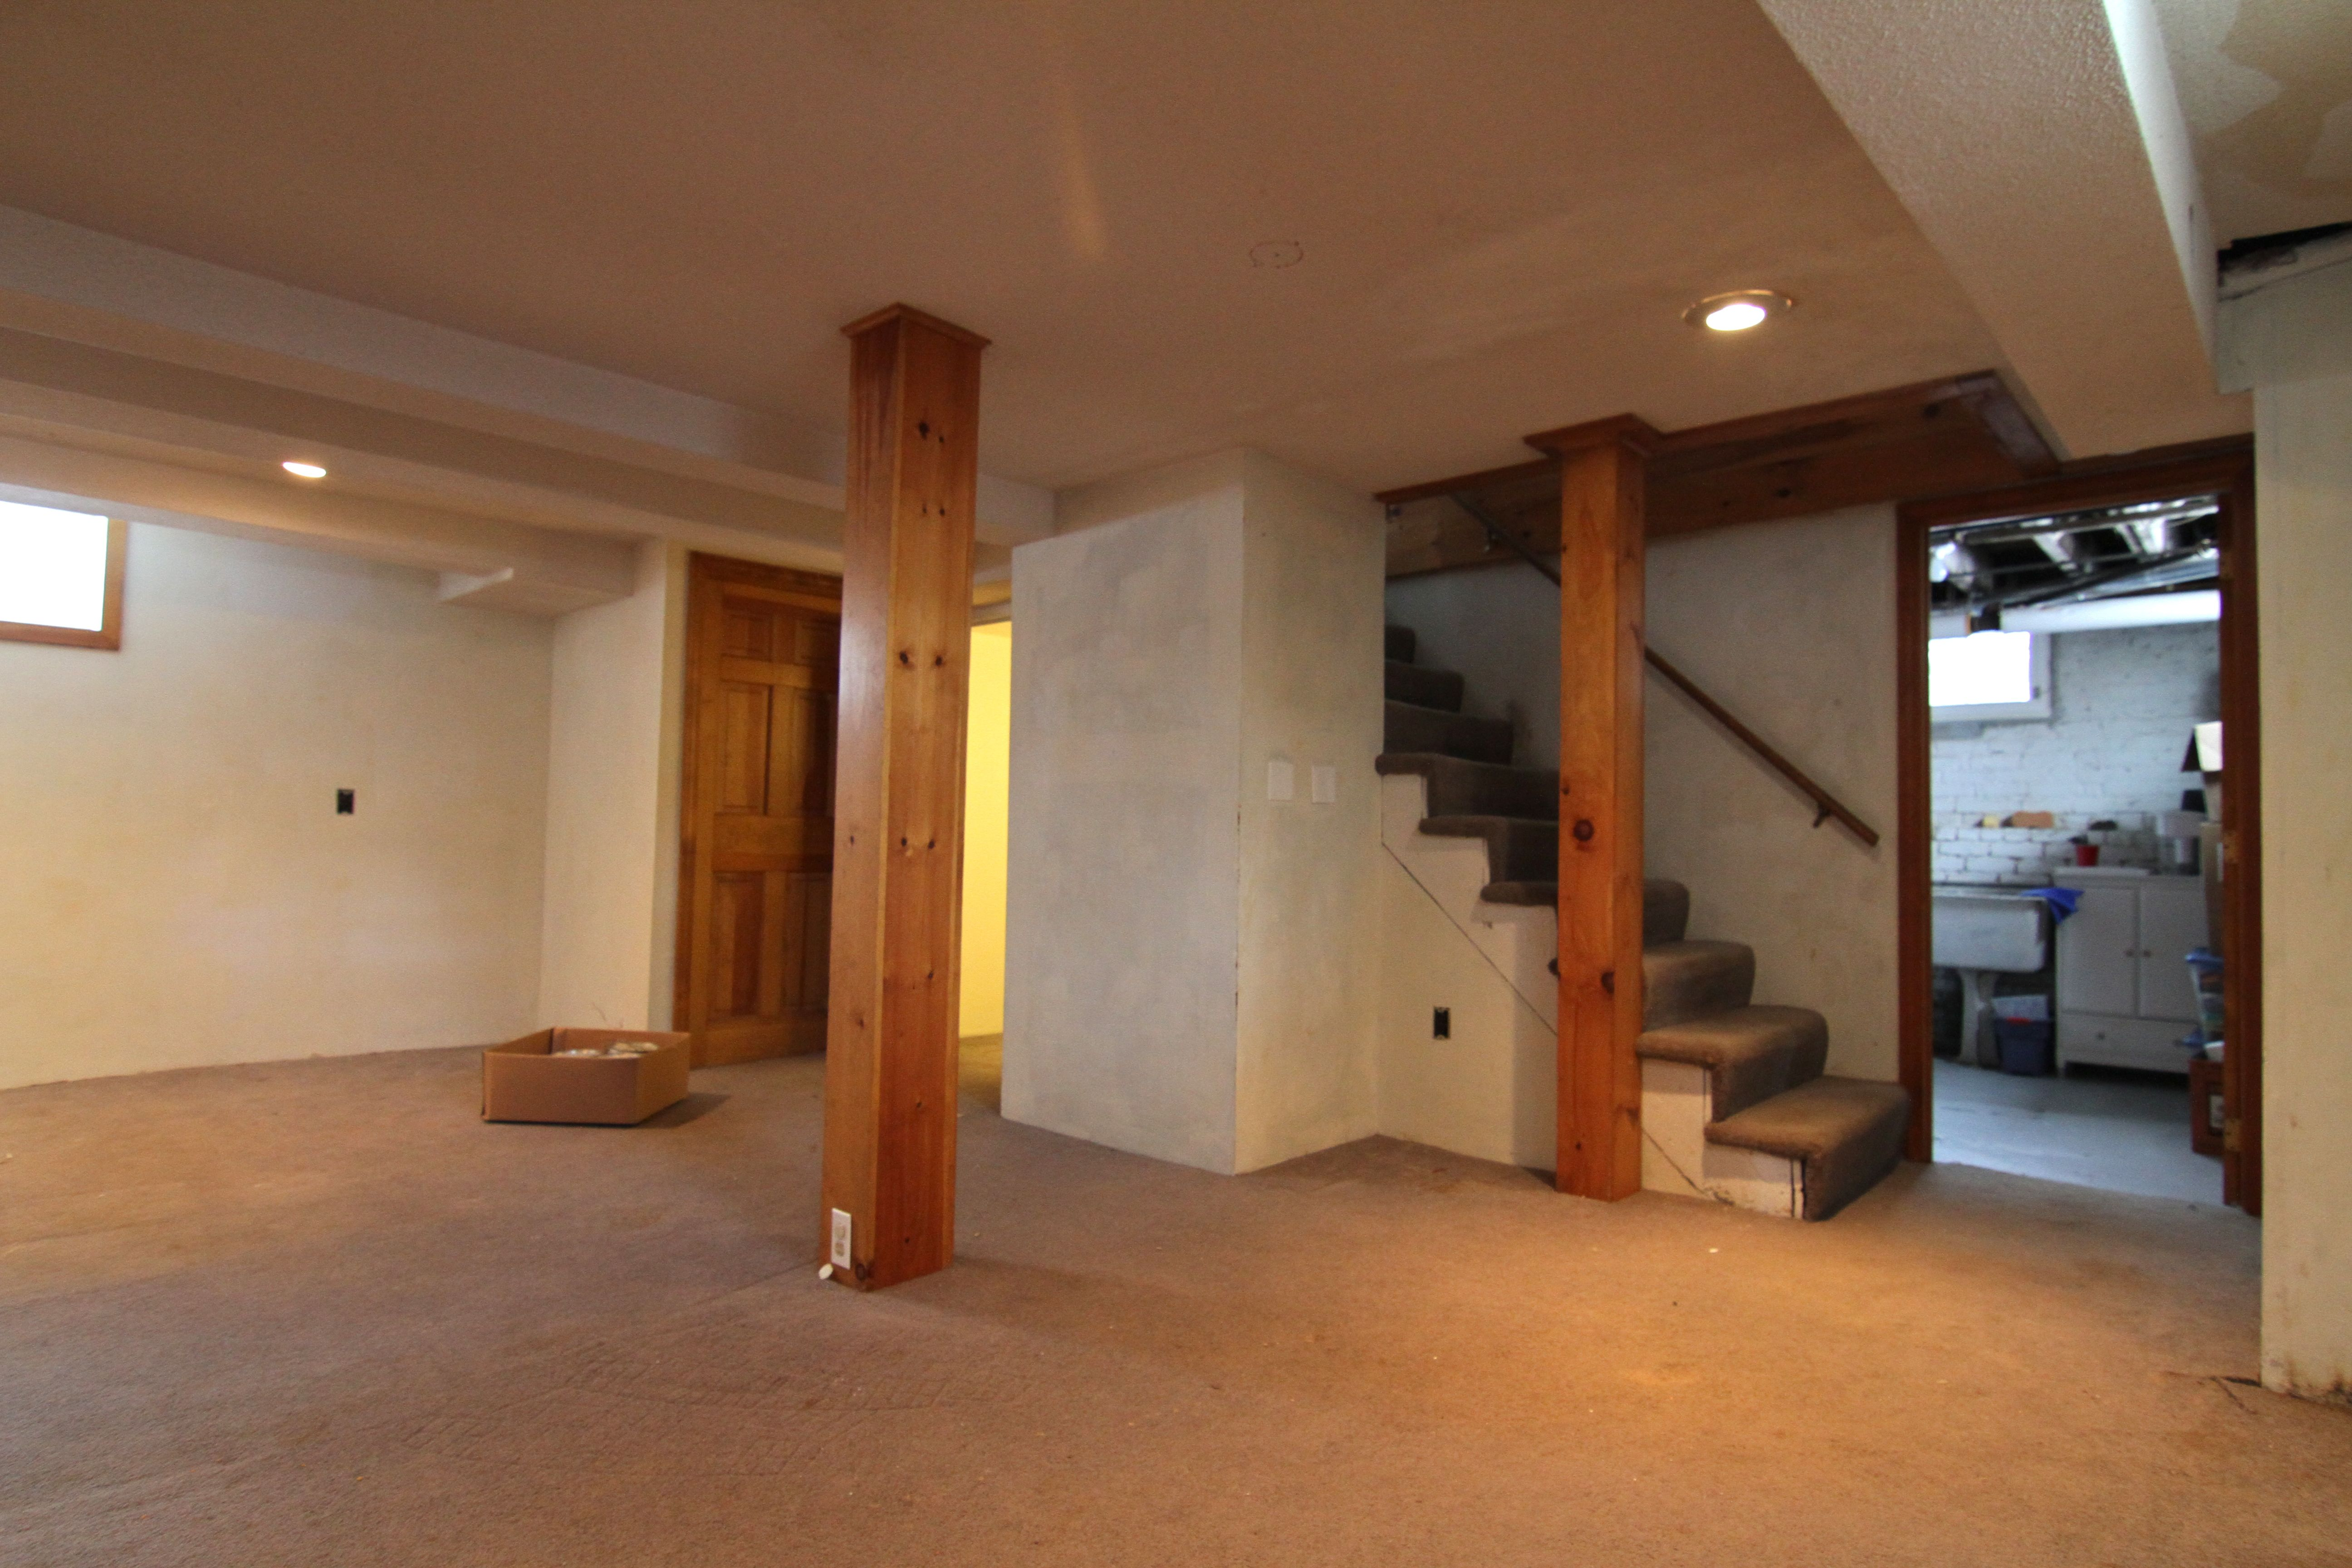 BEFORE: The stairs were wrapped 80s-style with carpet, the pine nearly au naturel, the rest, well, you get the idea.